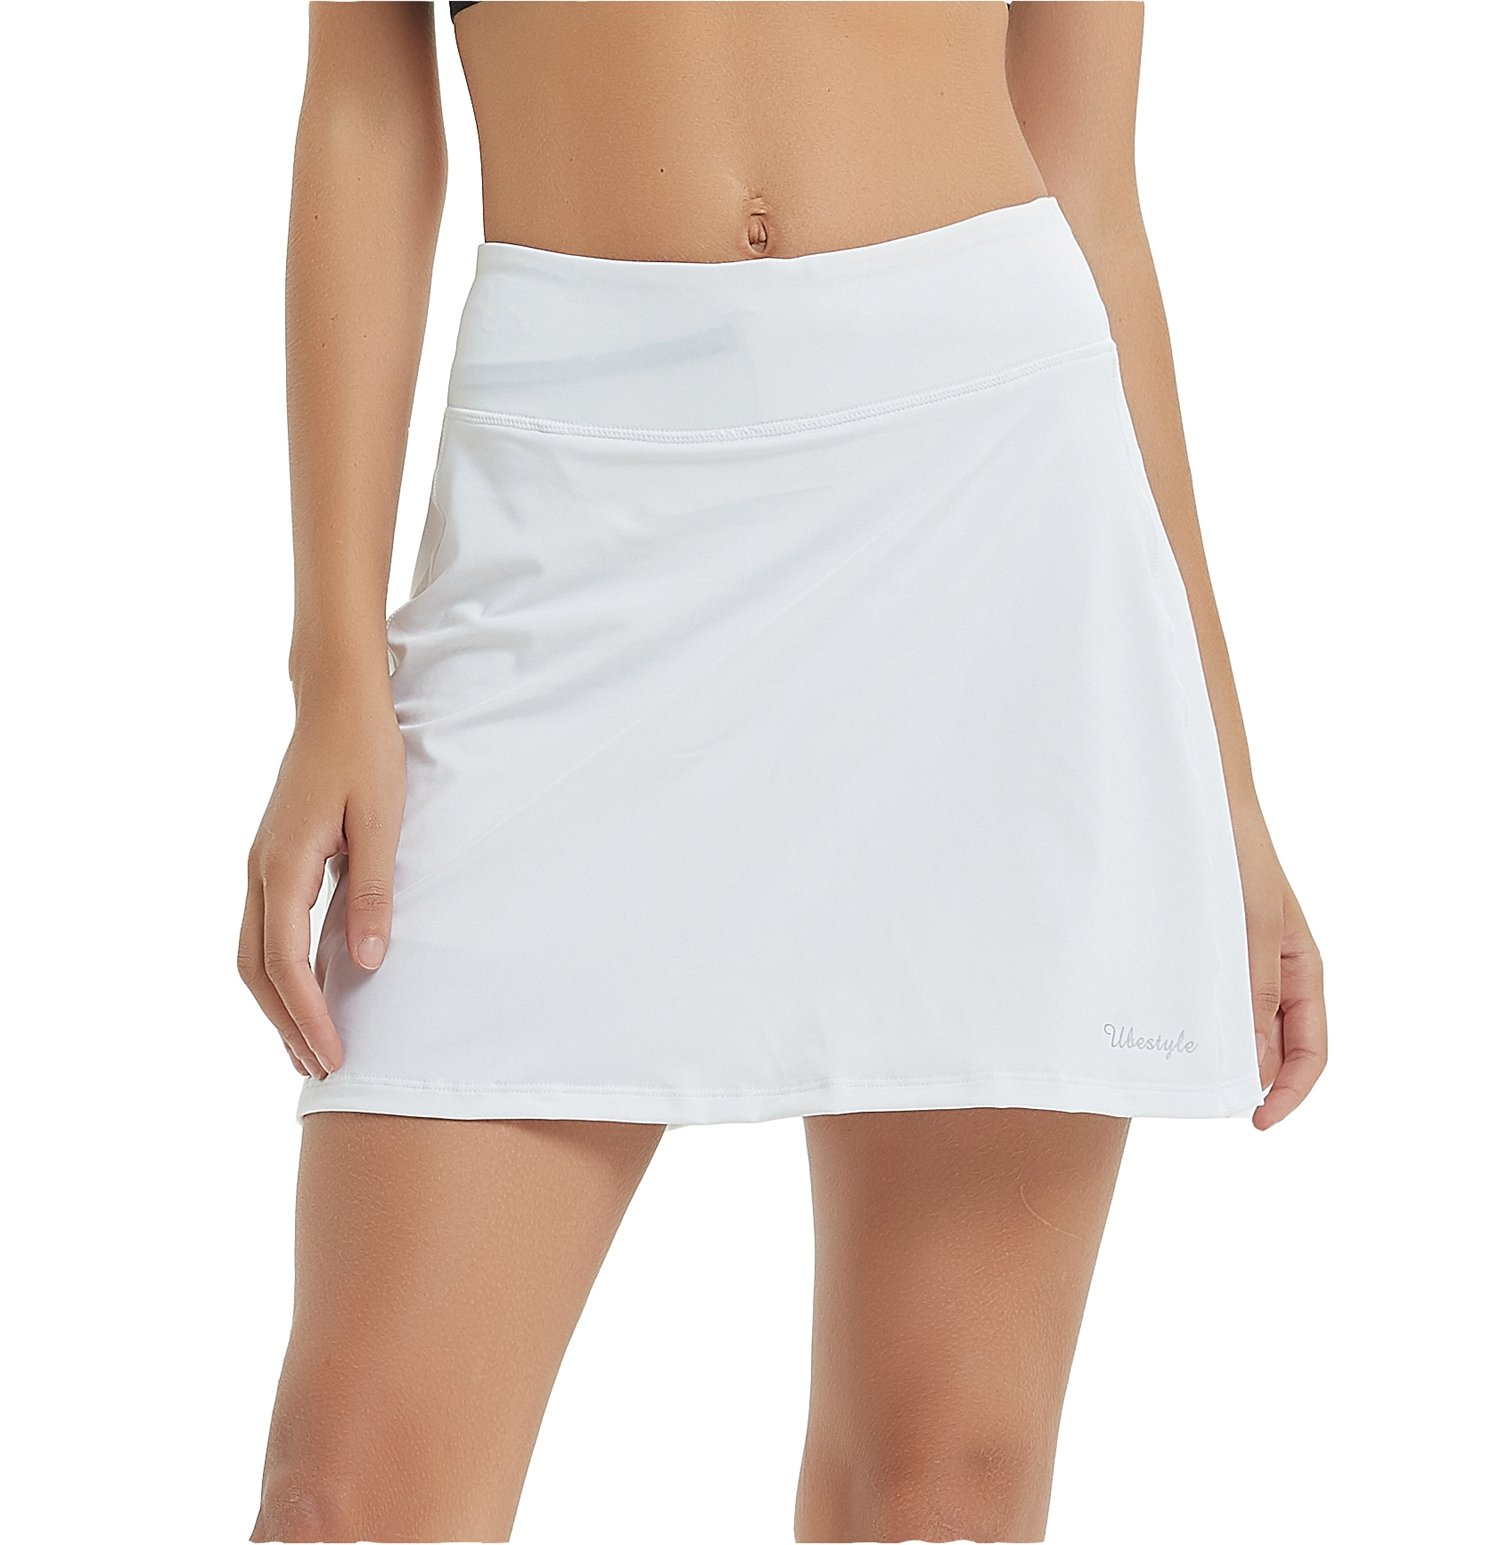 Ubestyle UPF 50+ Women's Active Athletic Skort Performance Skirt with Pockets for Running Tennis Golf Workout (White, L)